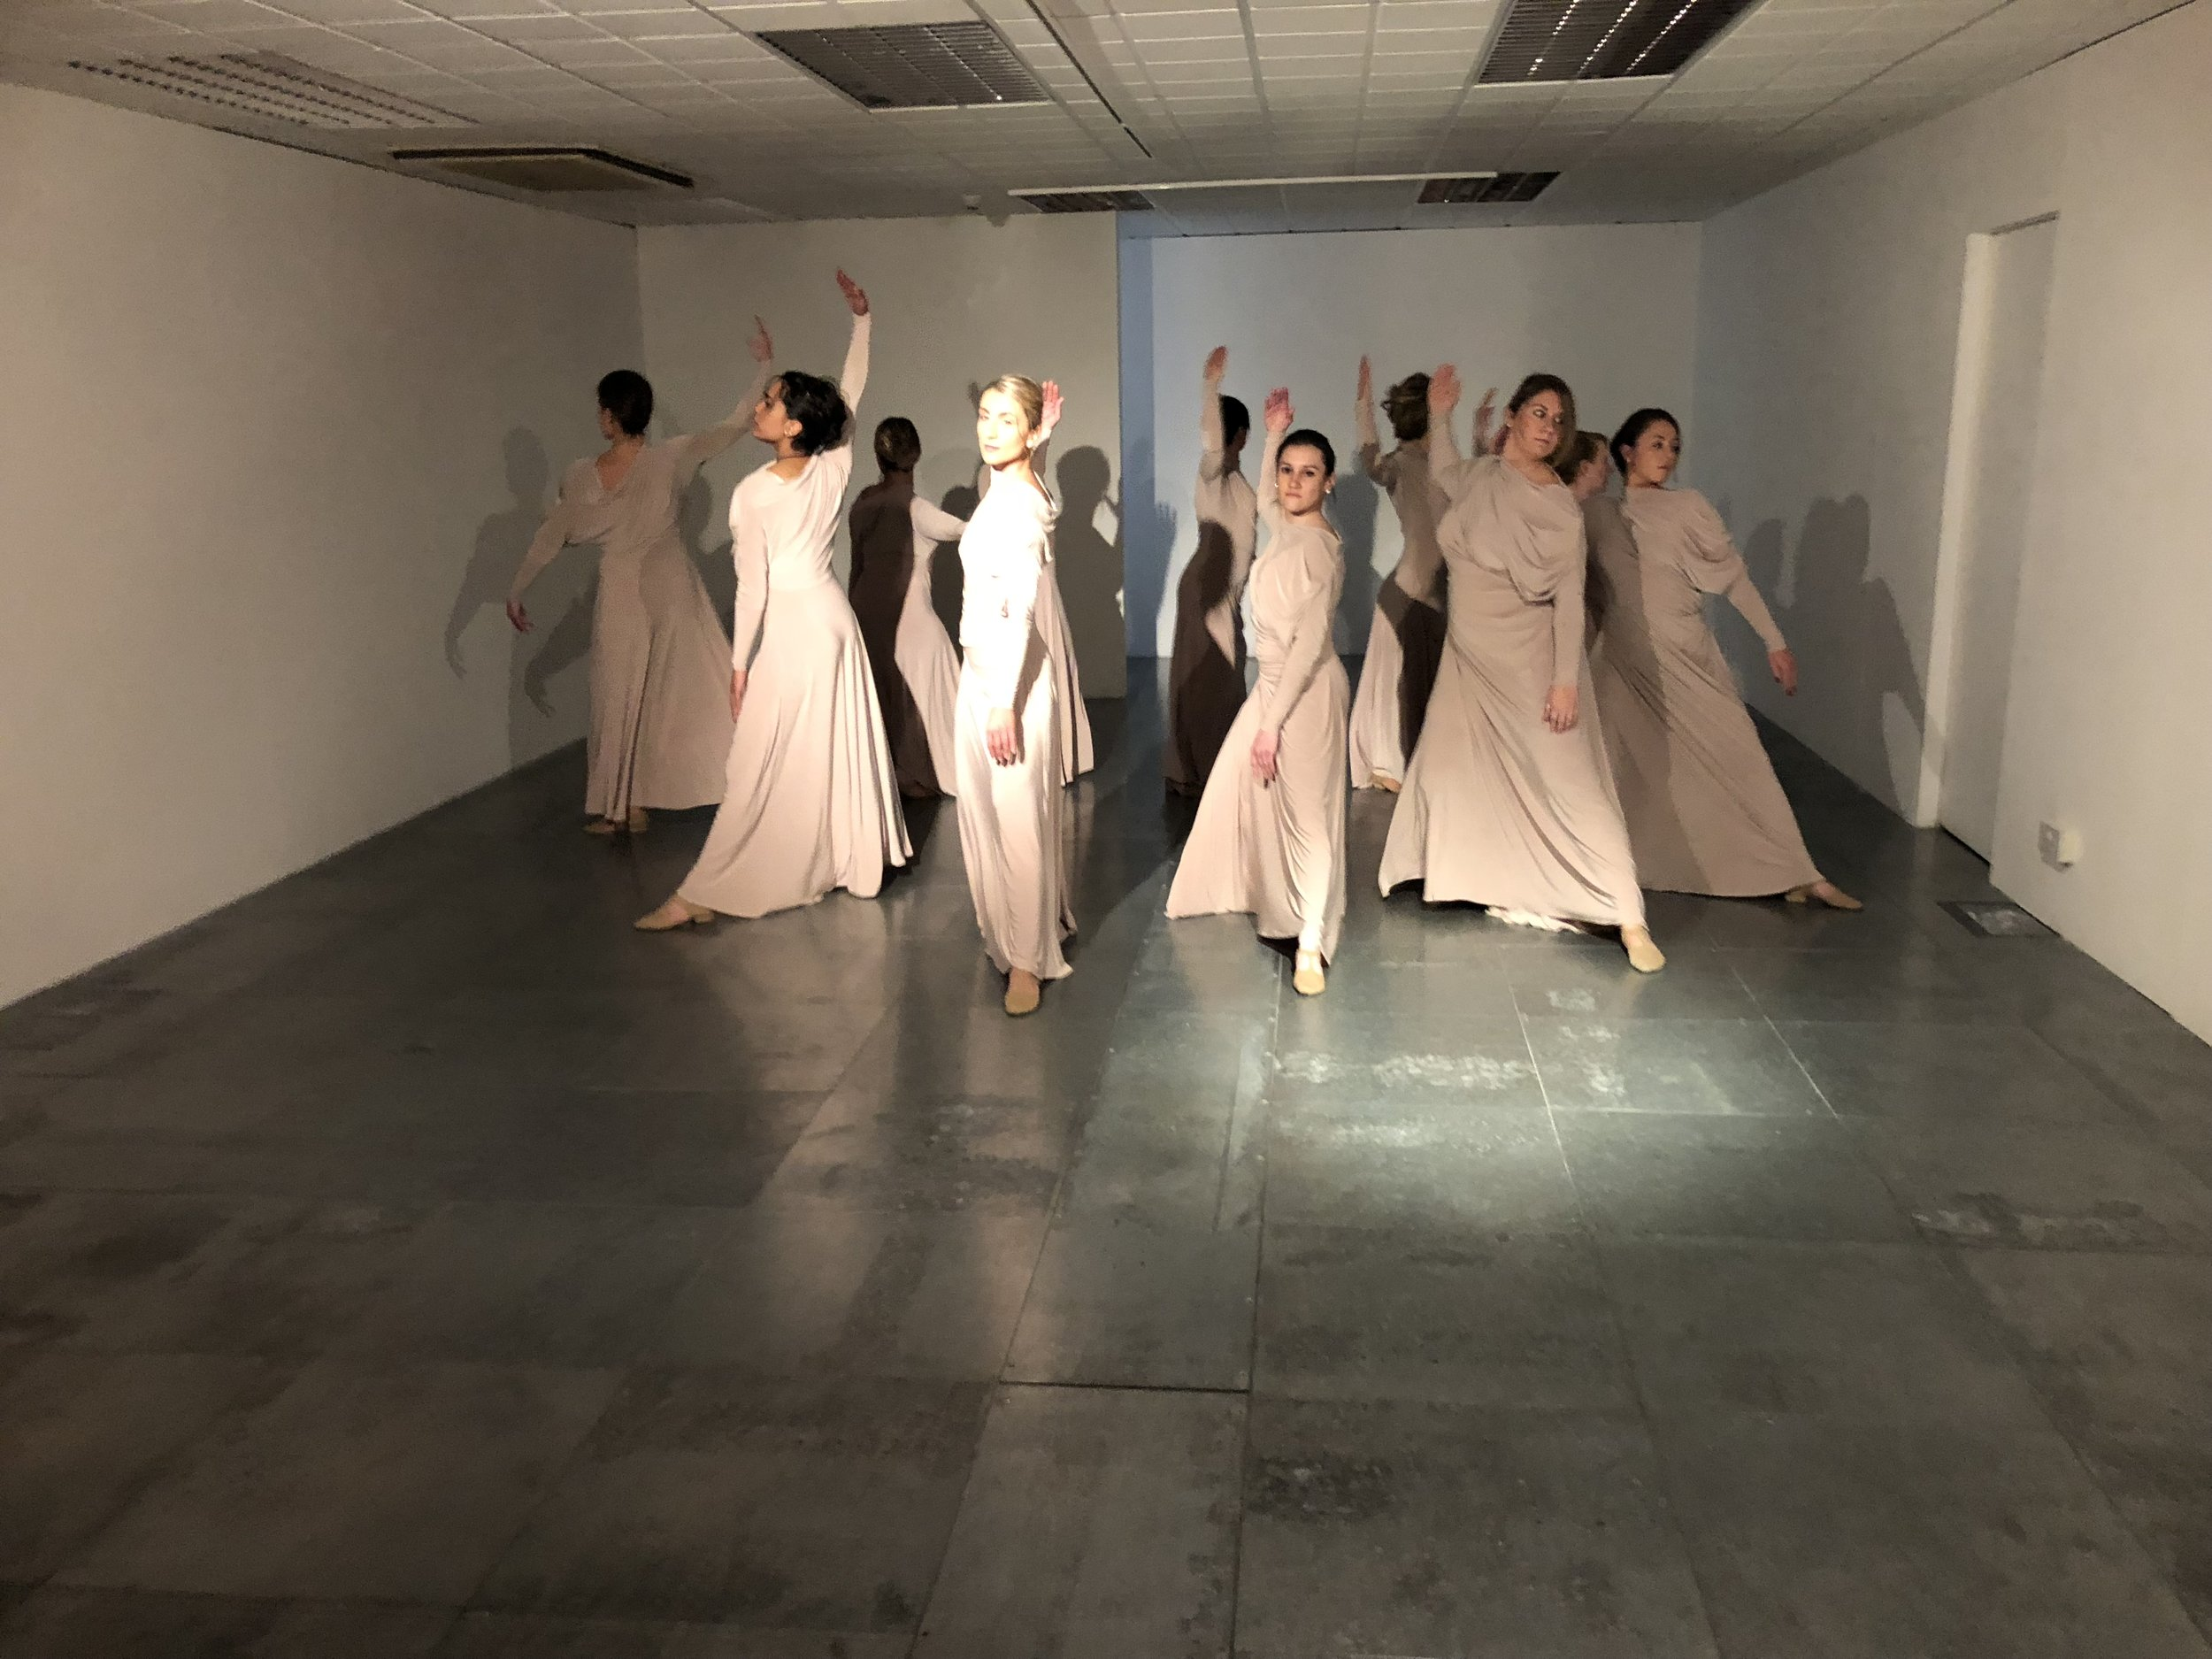 Tenfoot Dance Company, Angels of the North, Vane, October 2018.